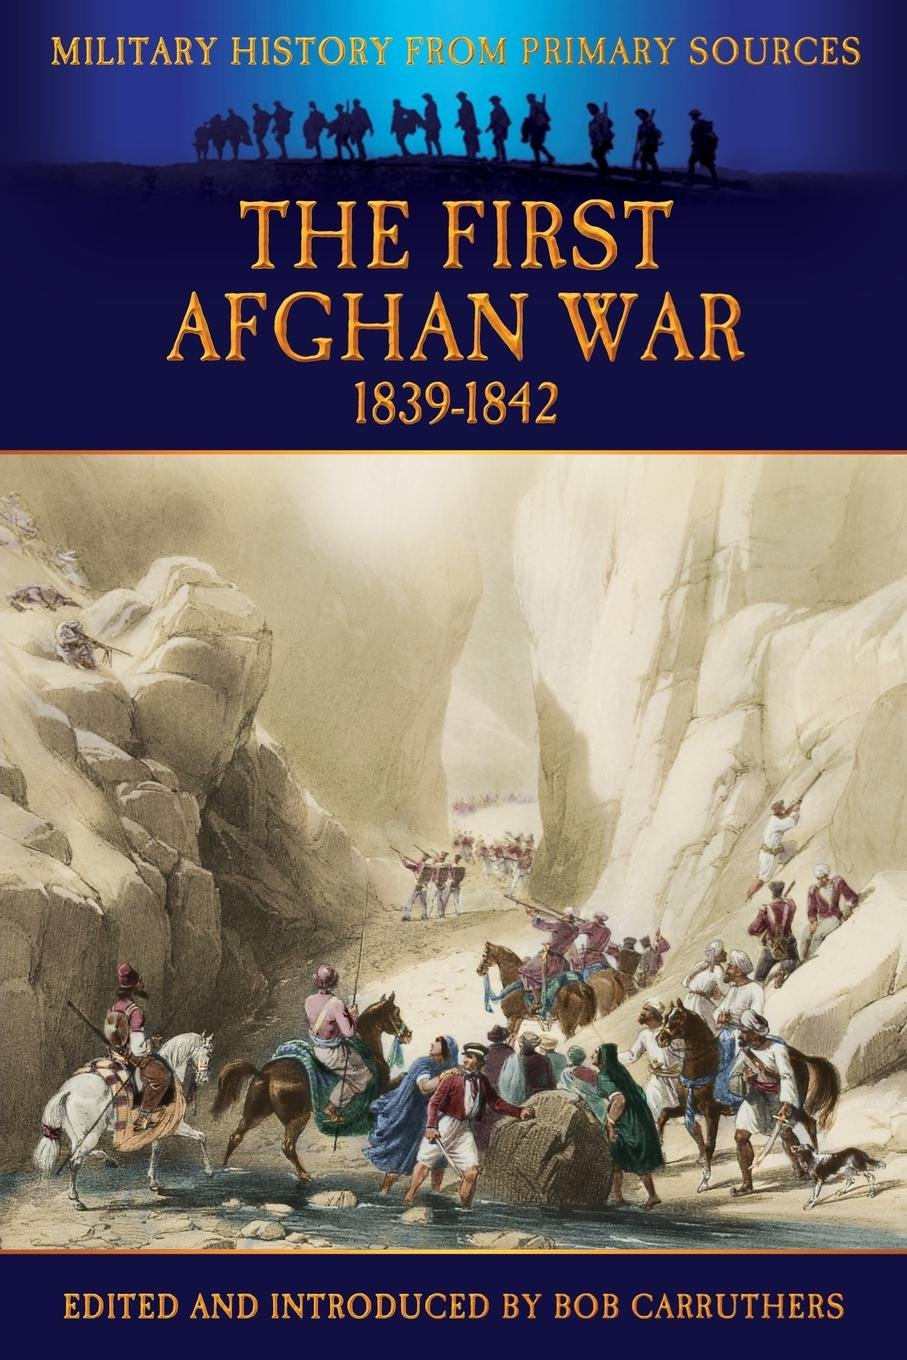 The First Afghan War 1839-1842